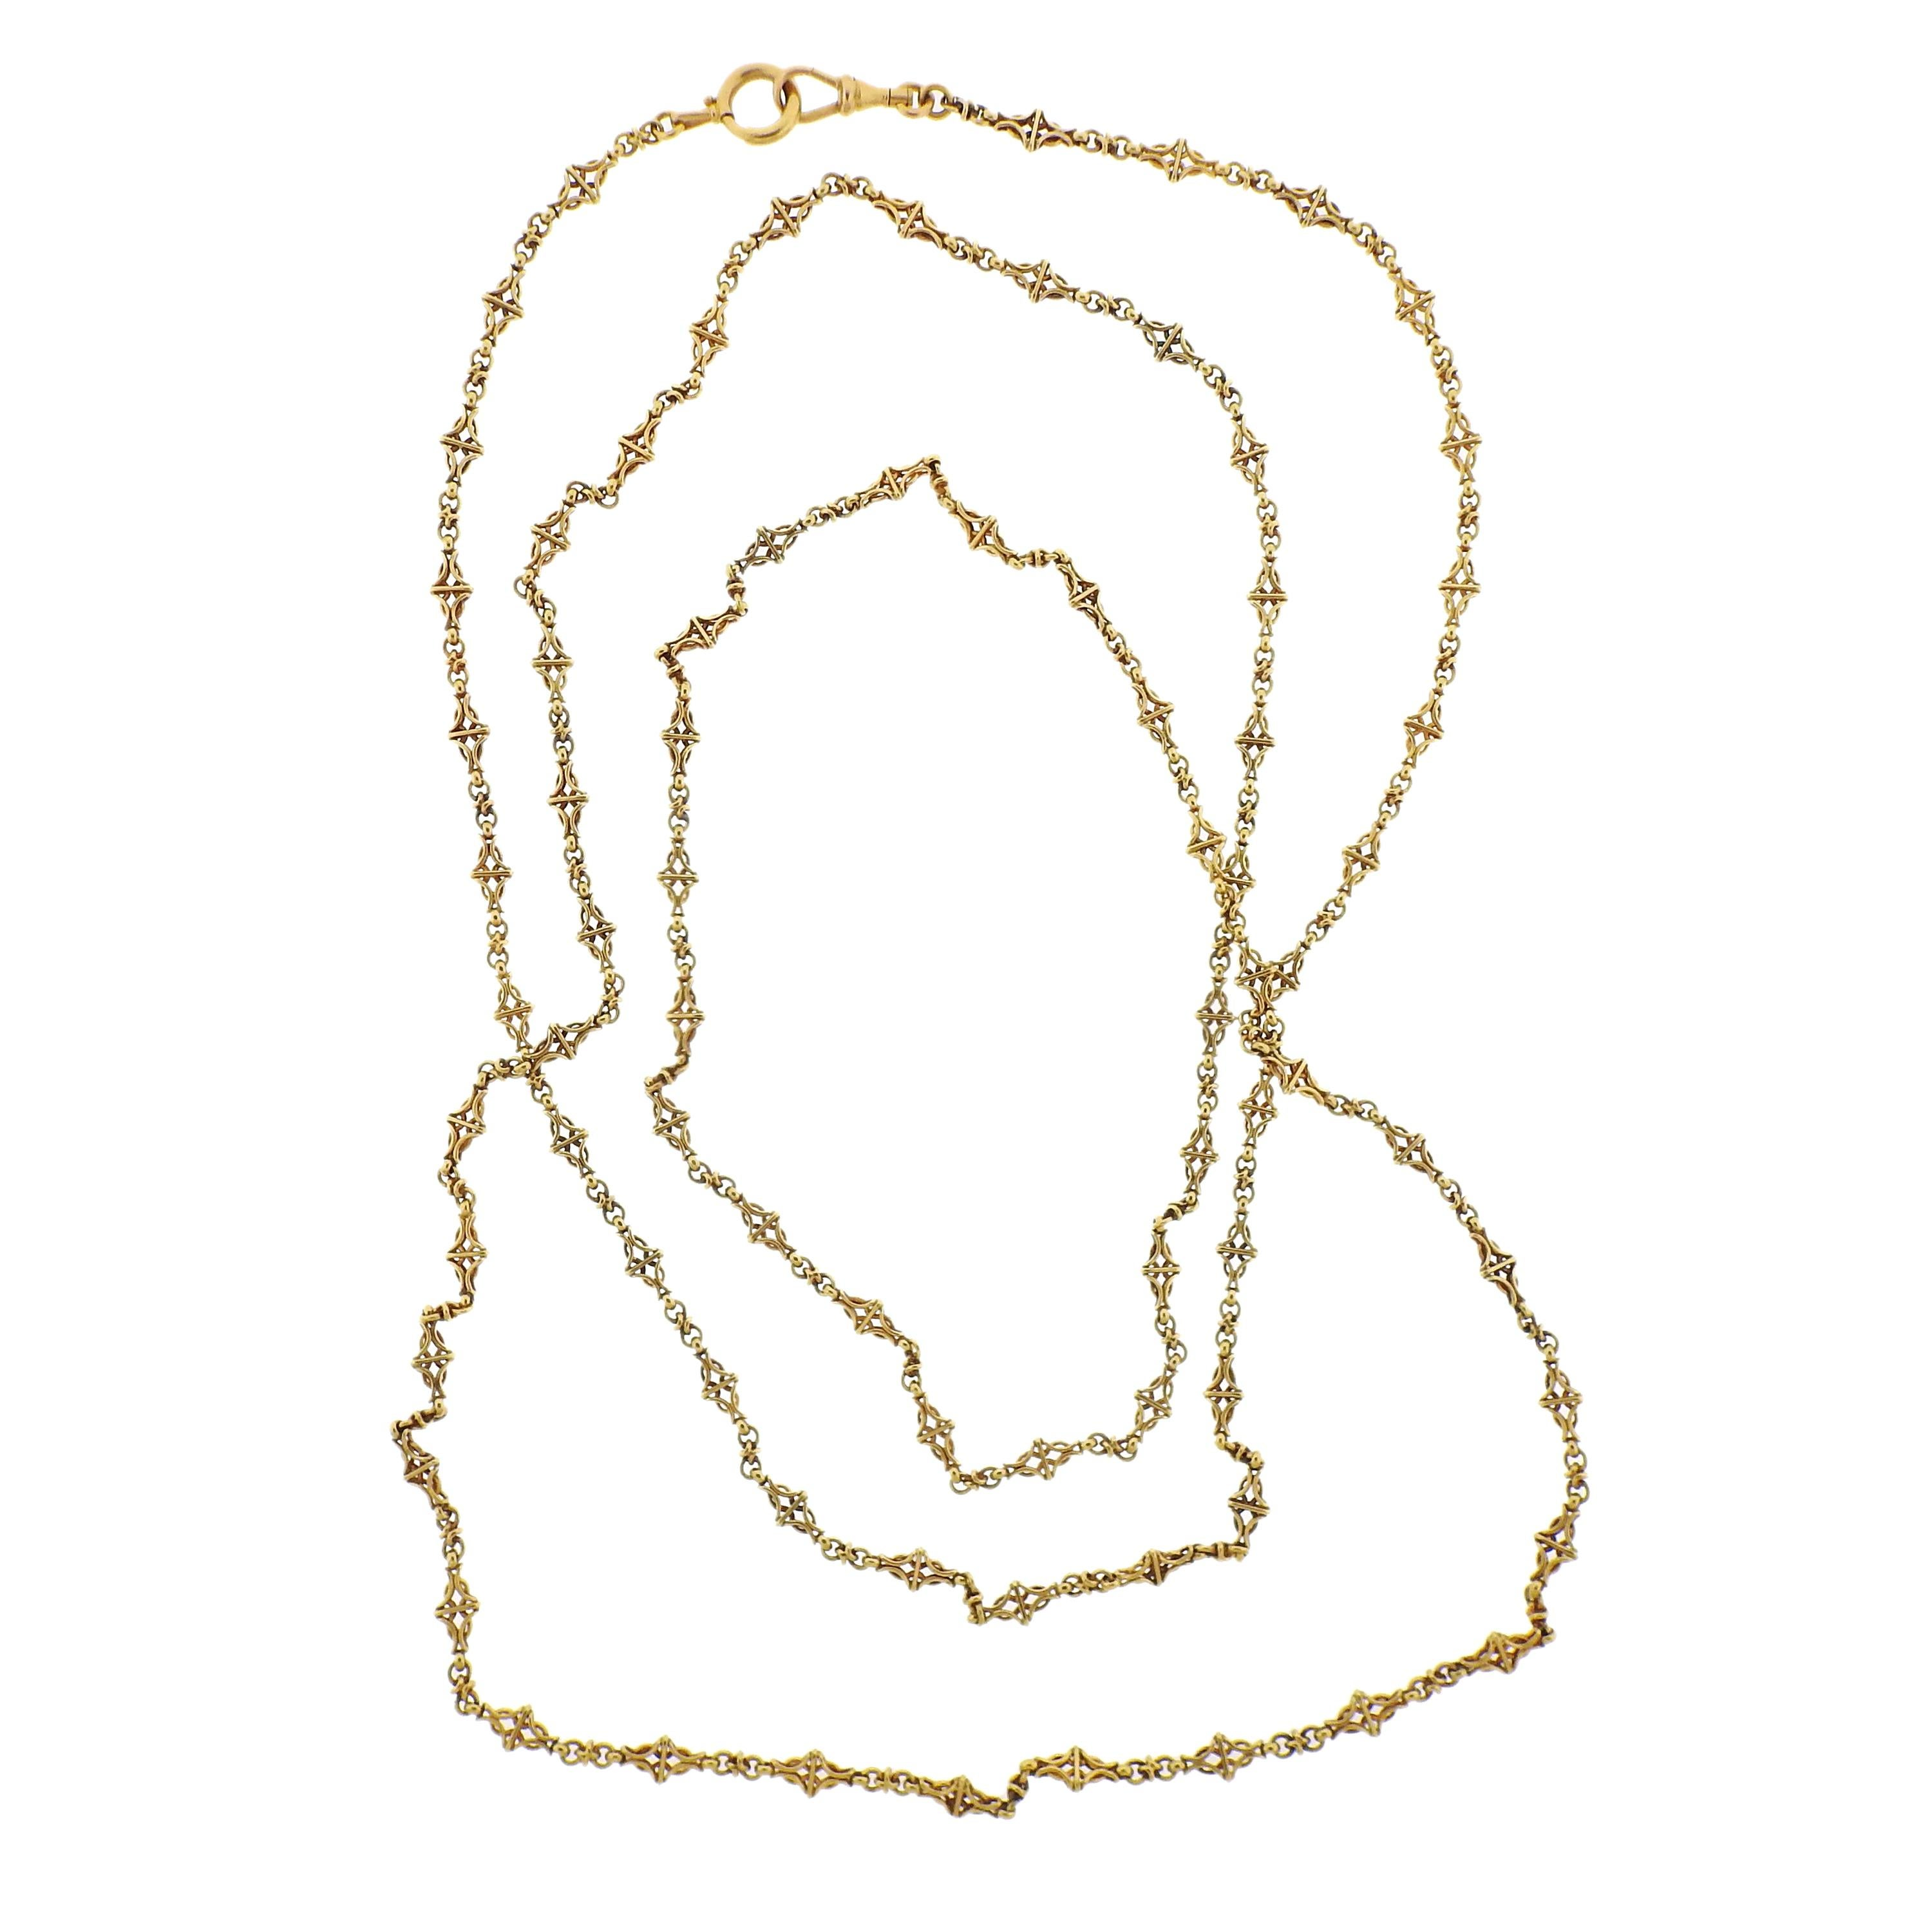 Antique Victorian Yellow Gold Long Fob Chain Necklace